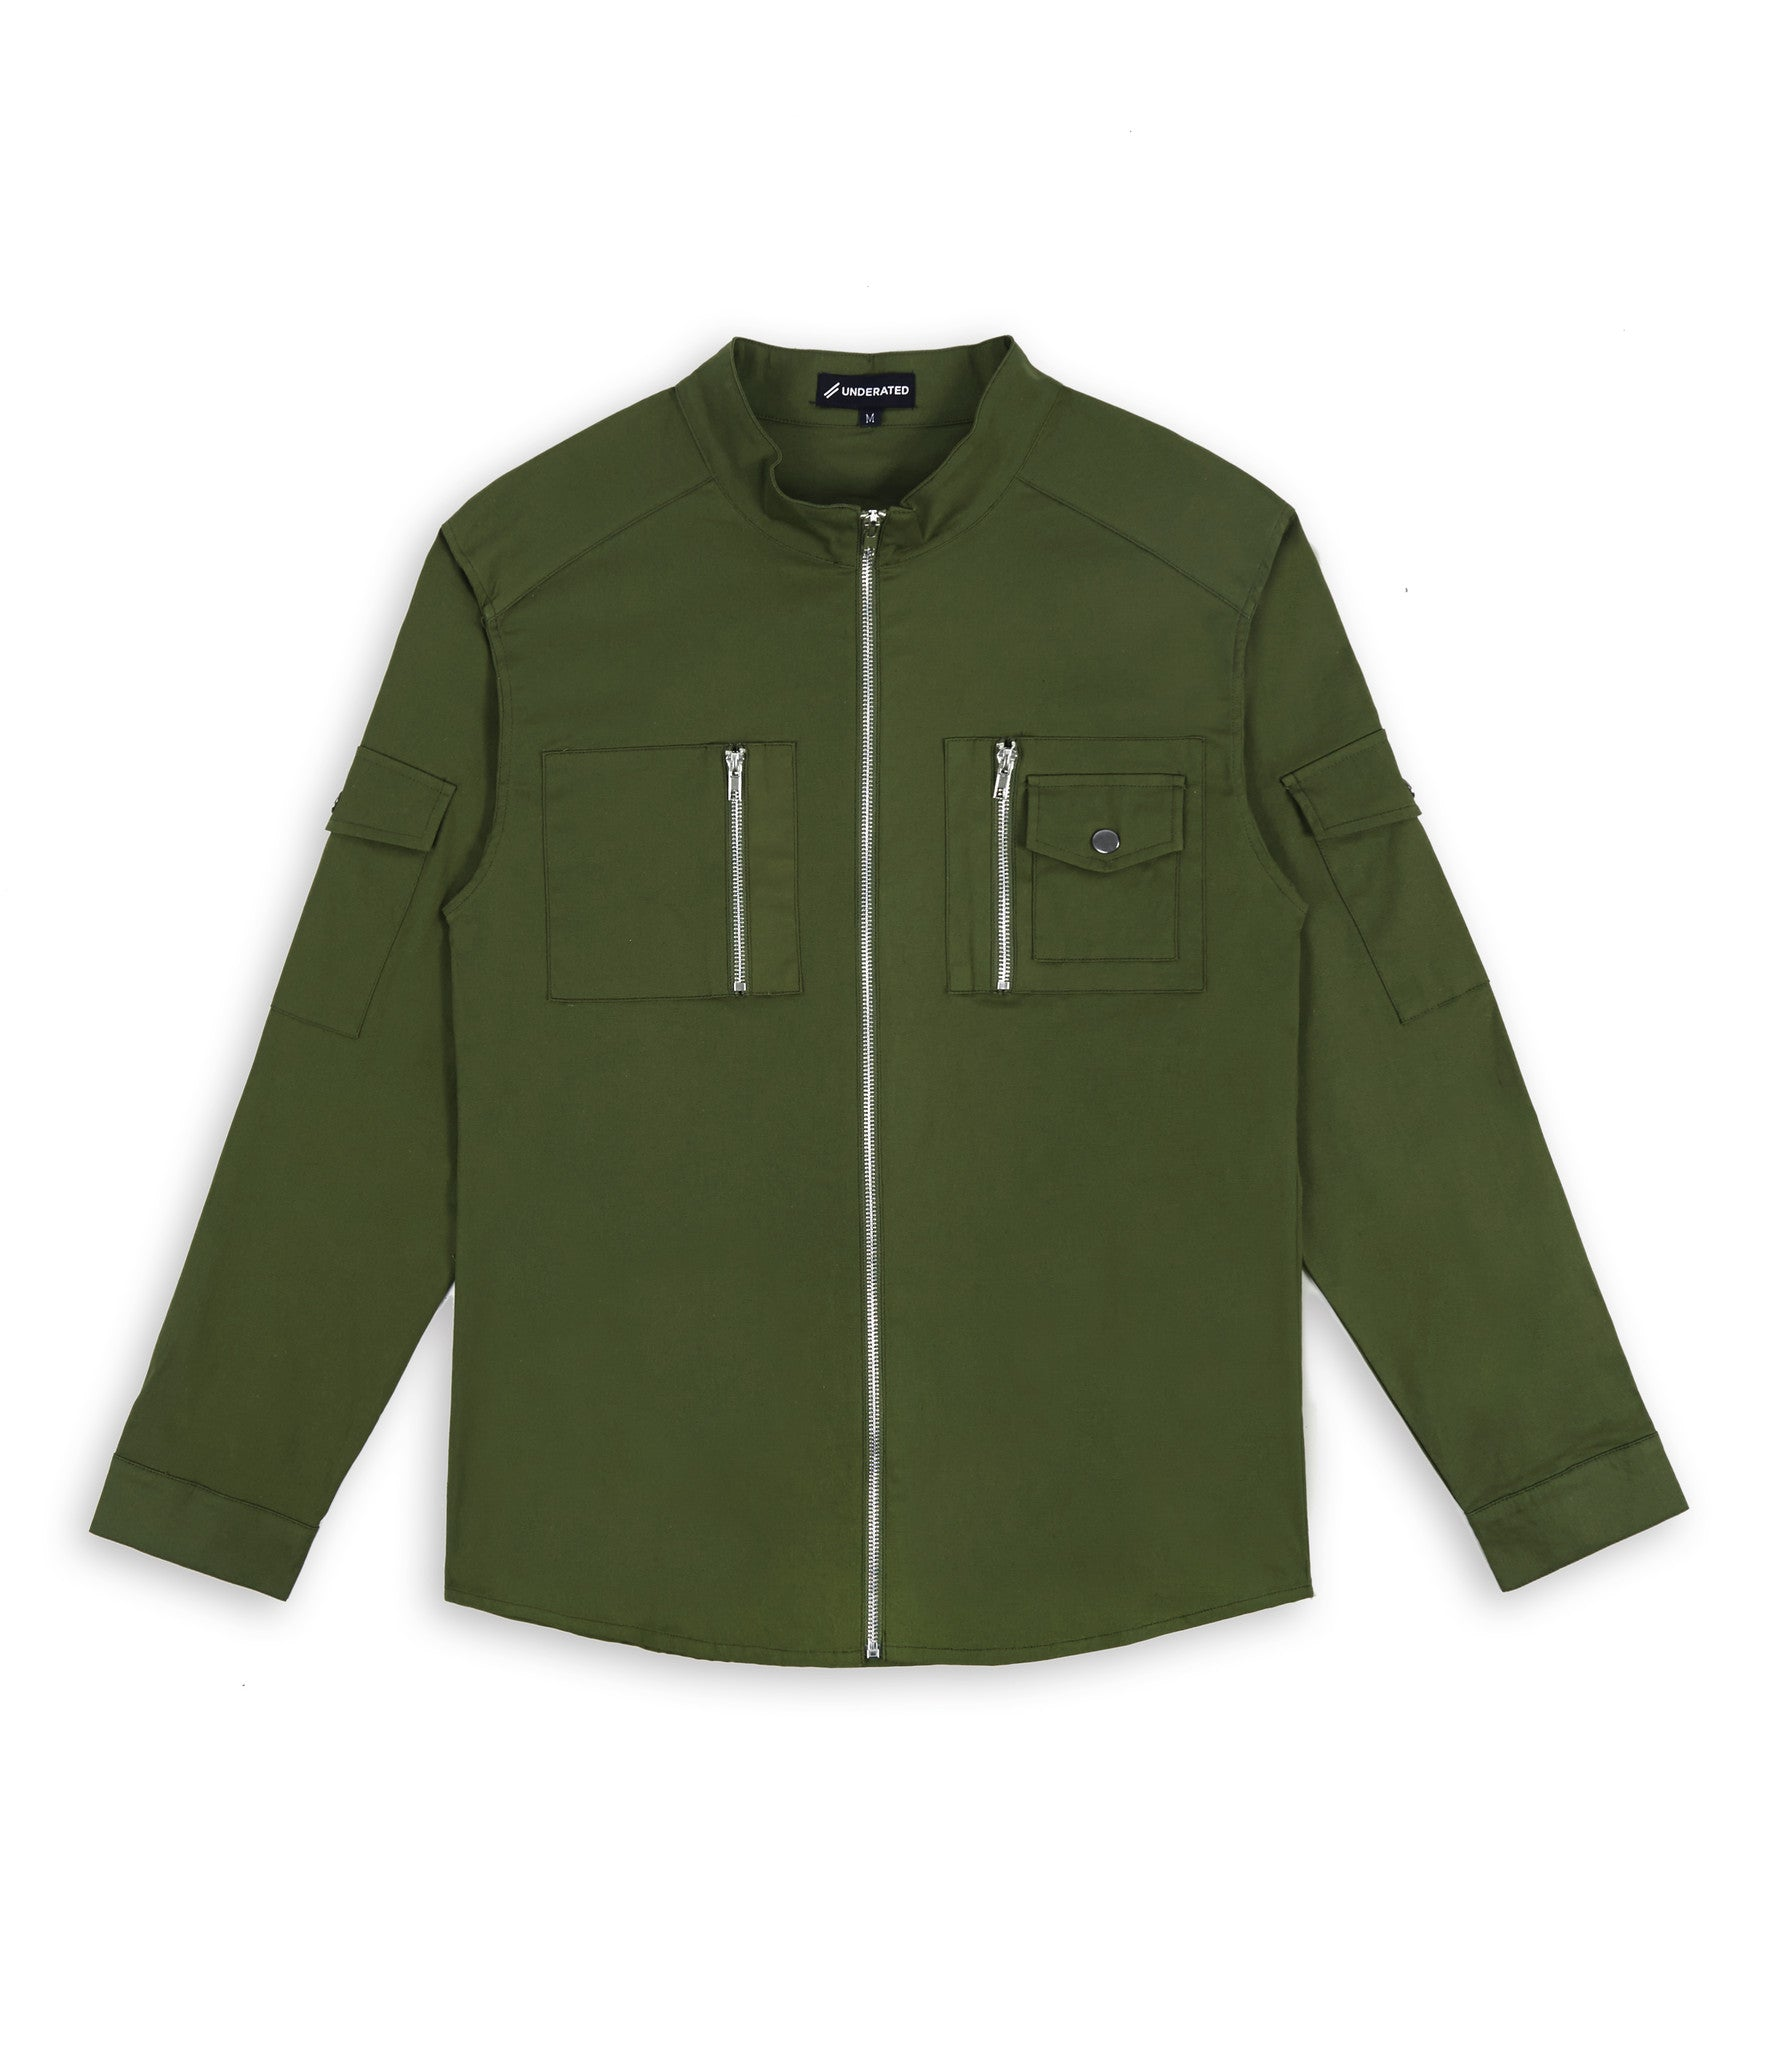 SH342 Utility Zip Shirt - Military Green - underated london - underatedco - 1